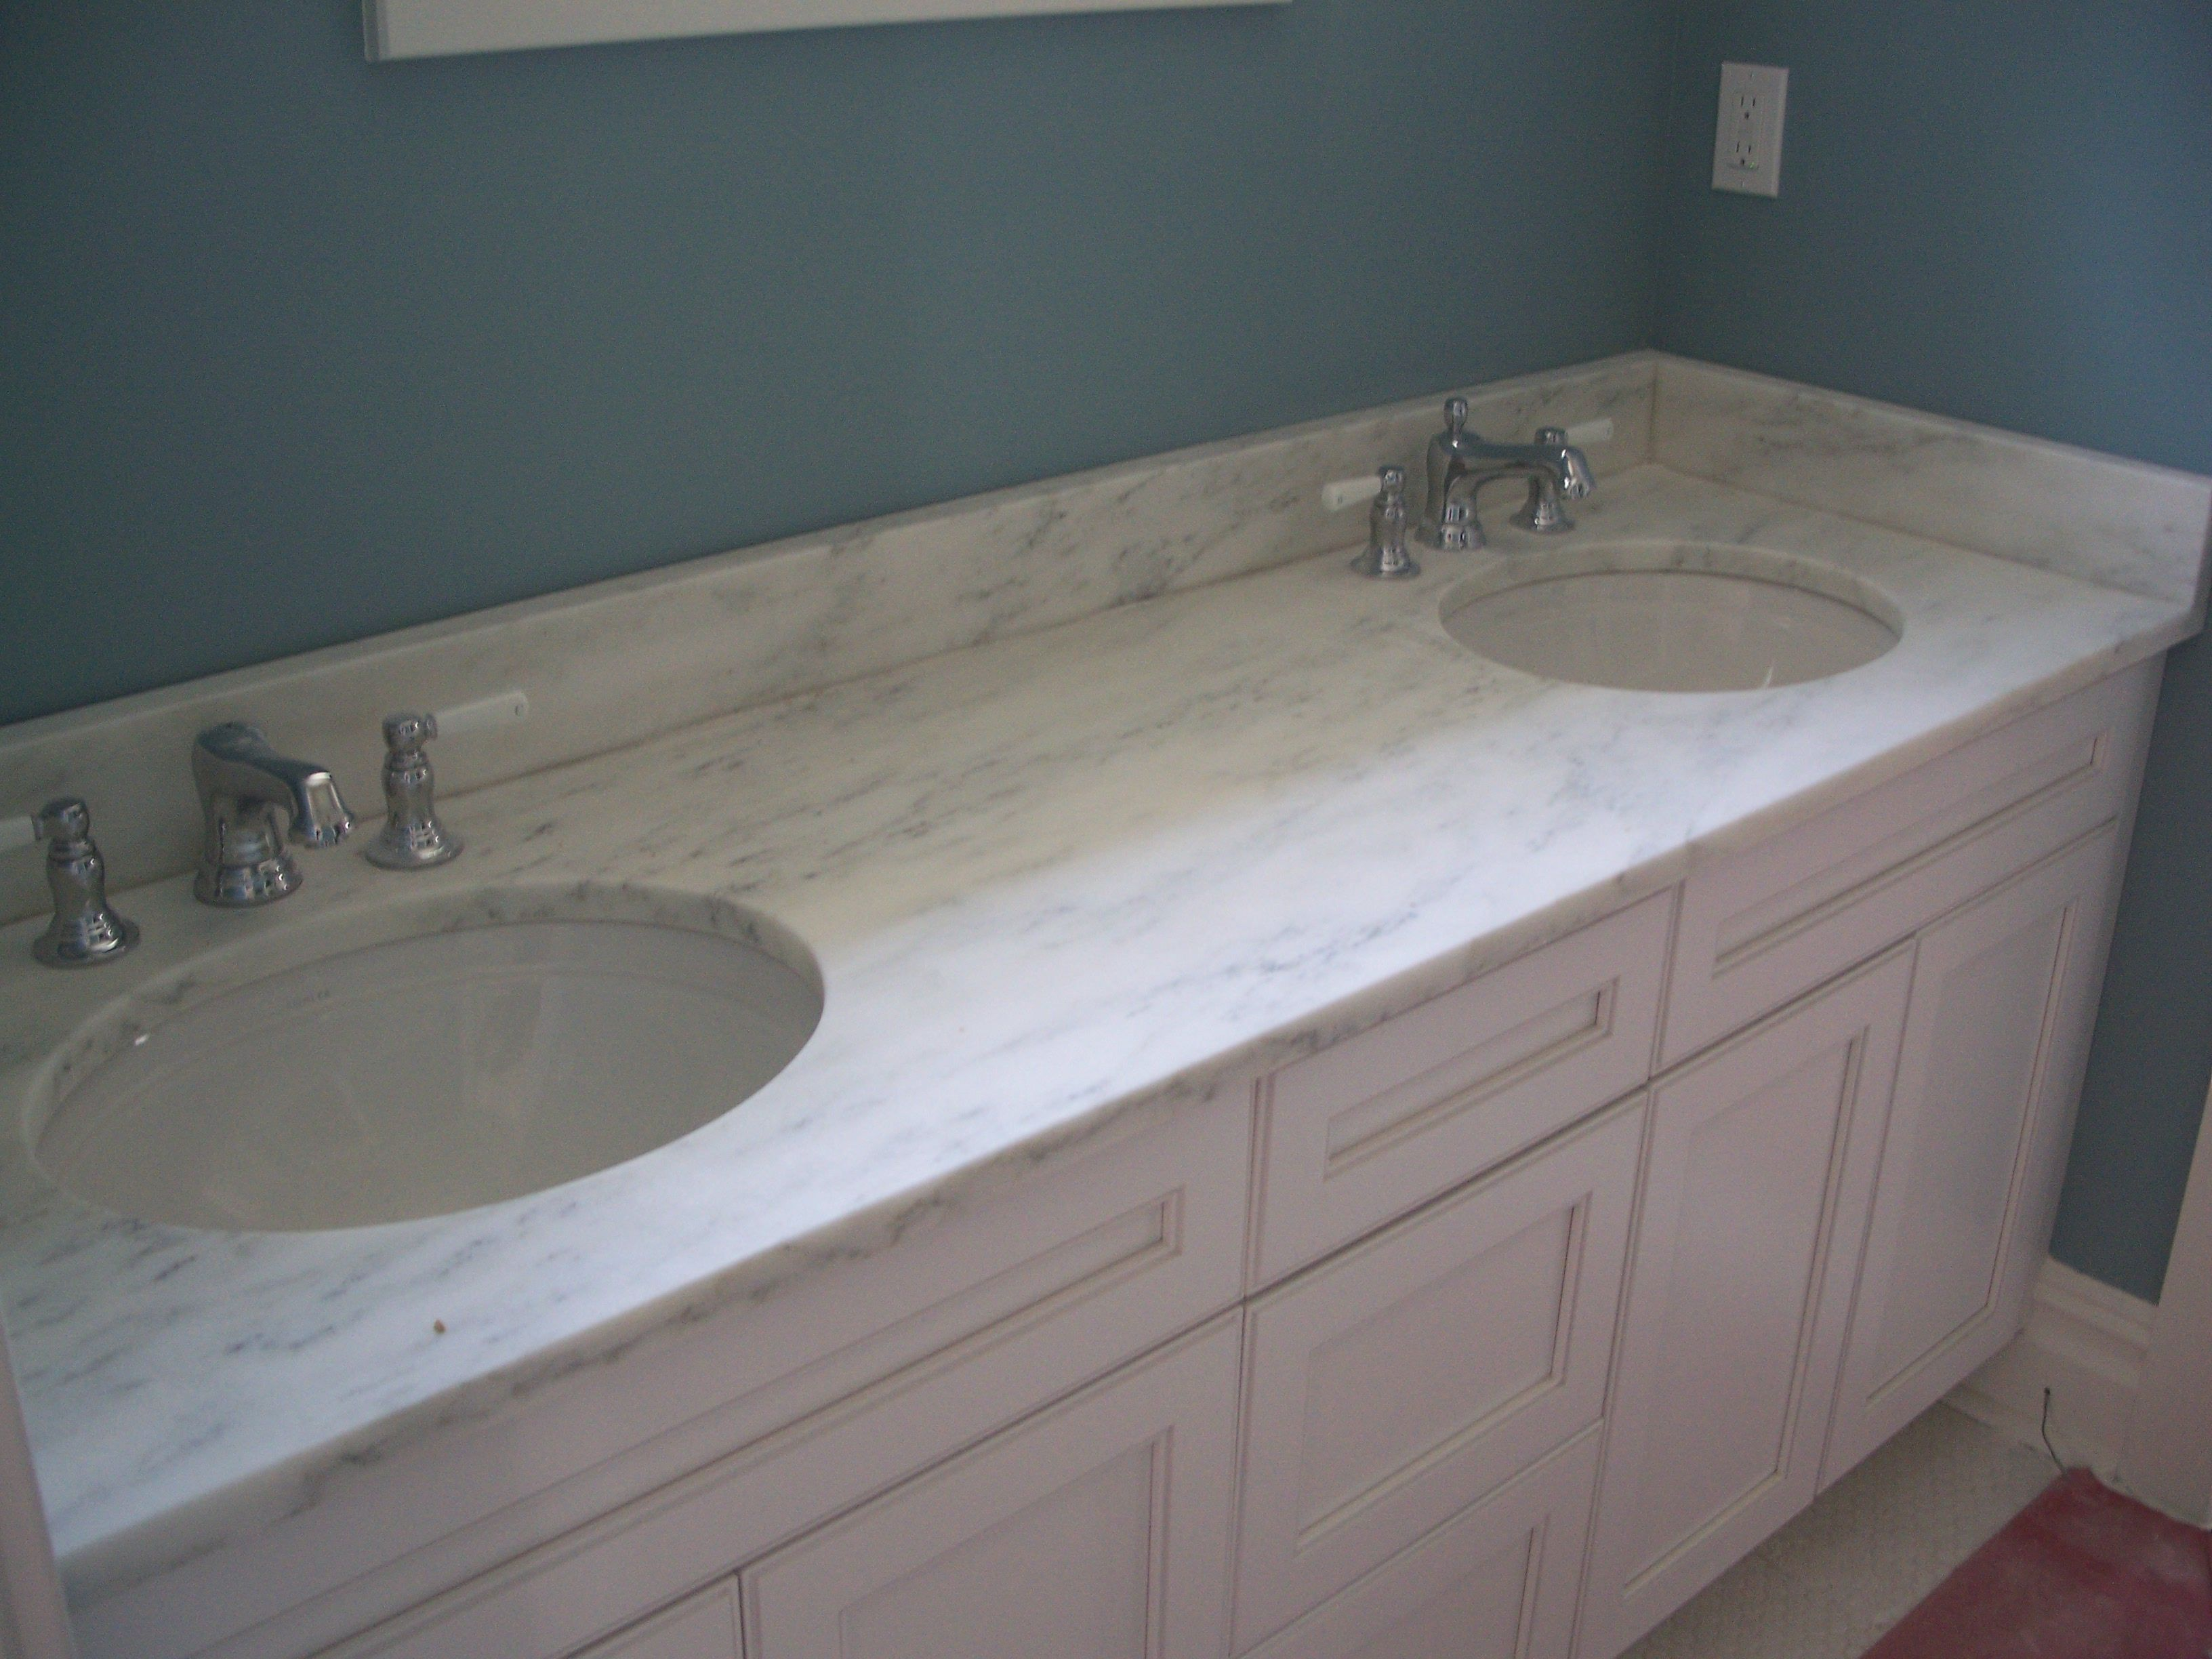 Sink Top For Vanity. Image result for bathroom marble vanity top pictures  Tanglewood